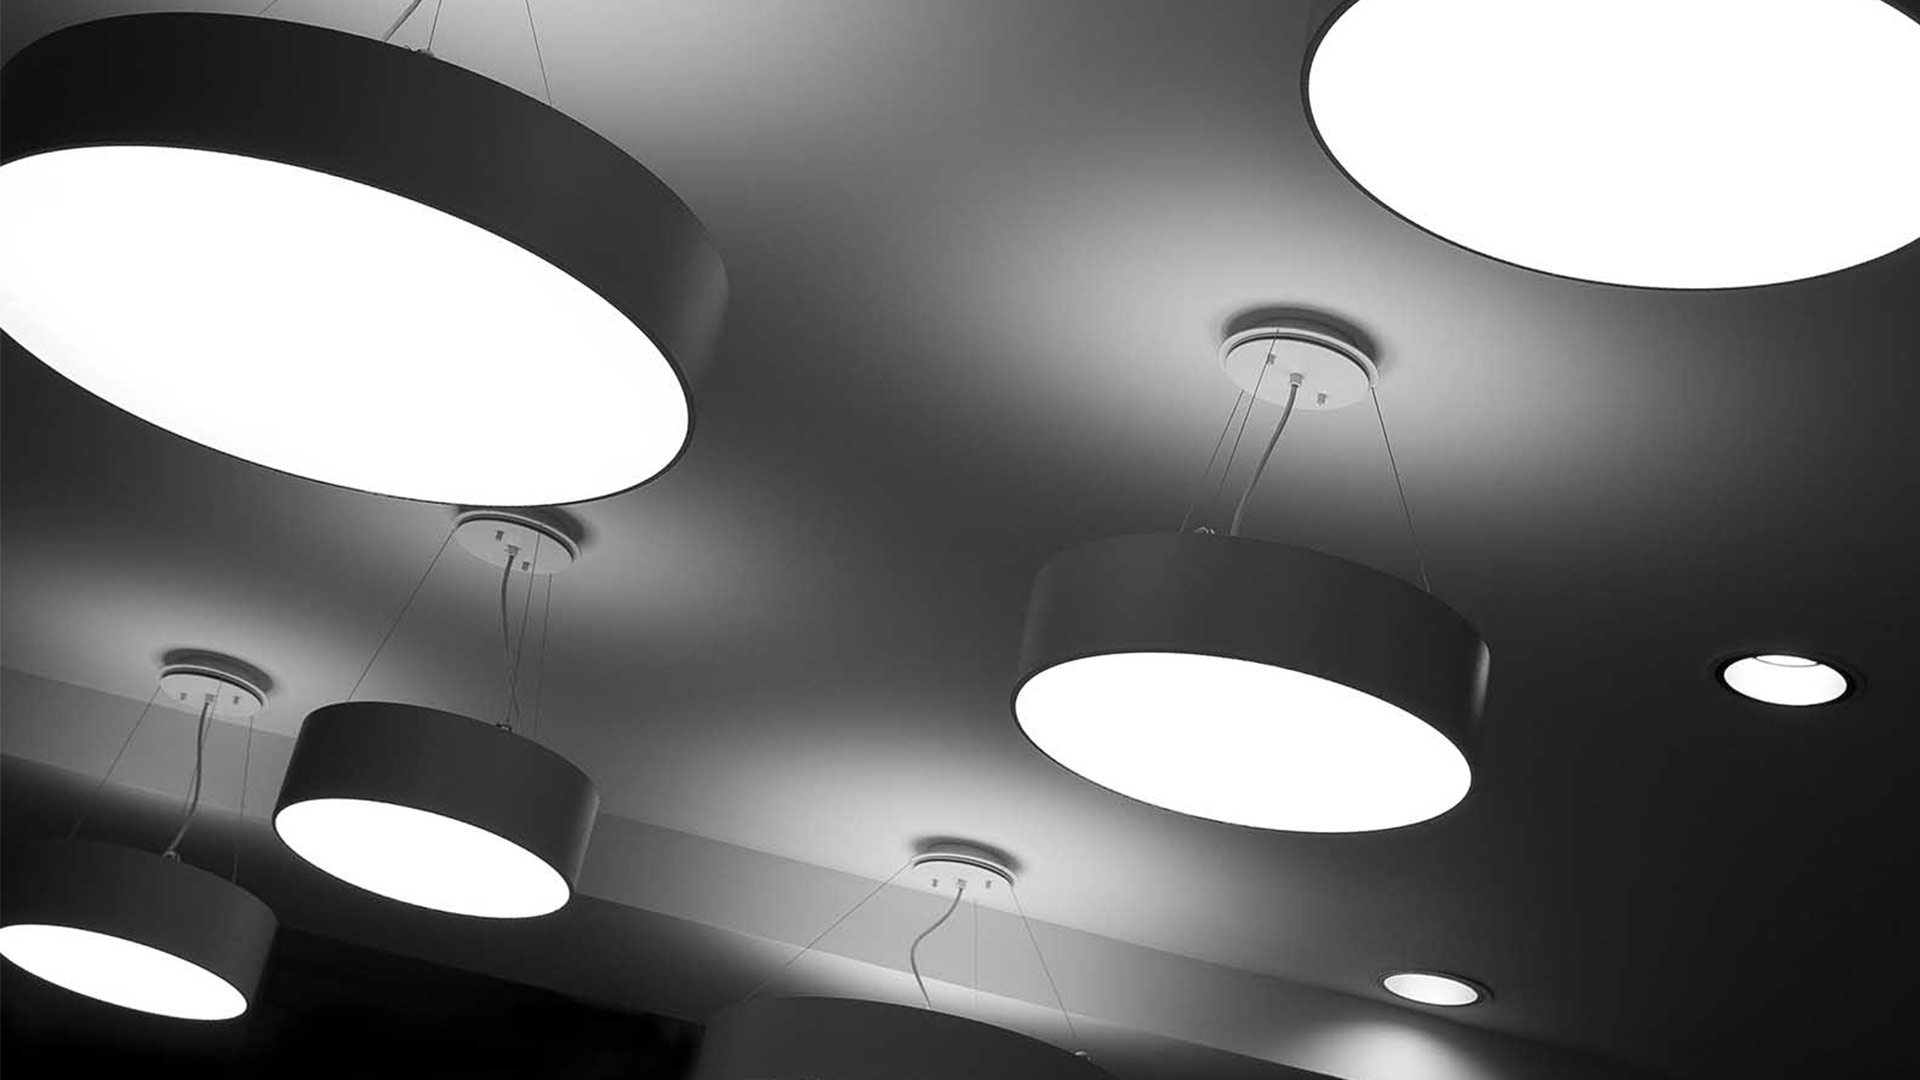 Circular Suspended Light Pendants Low Energy Workplace Lighting Design Nulty